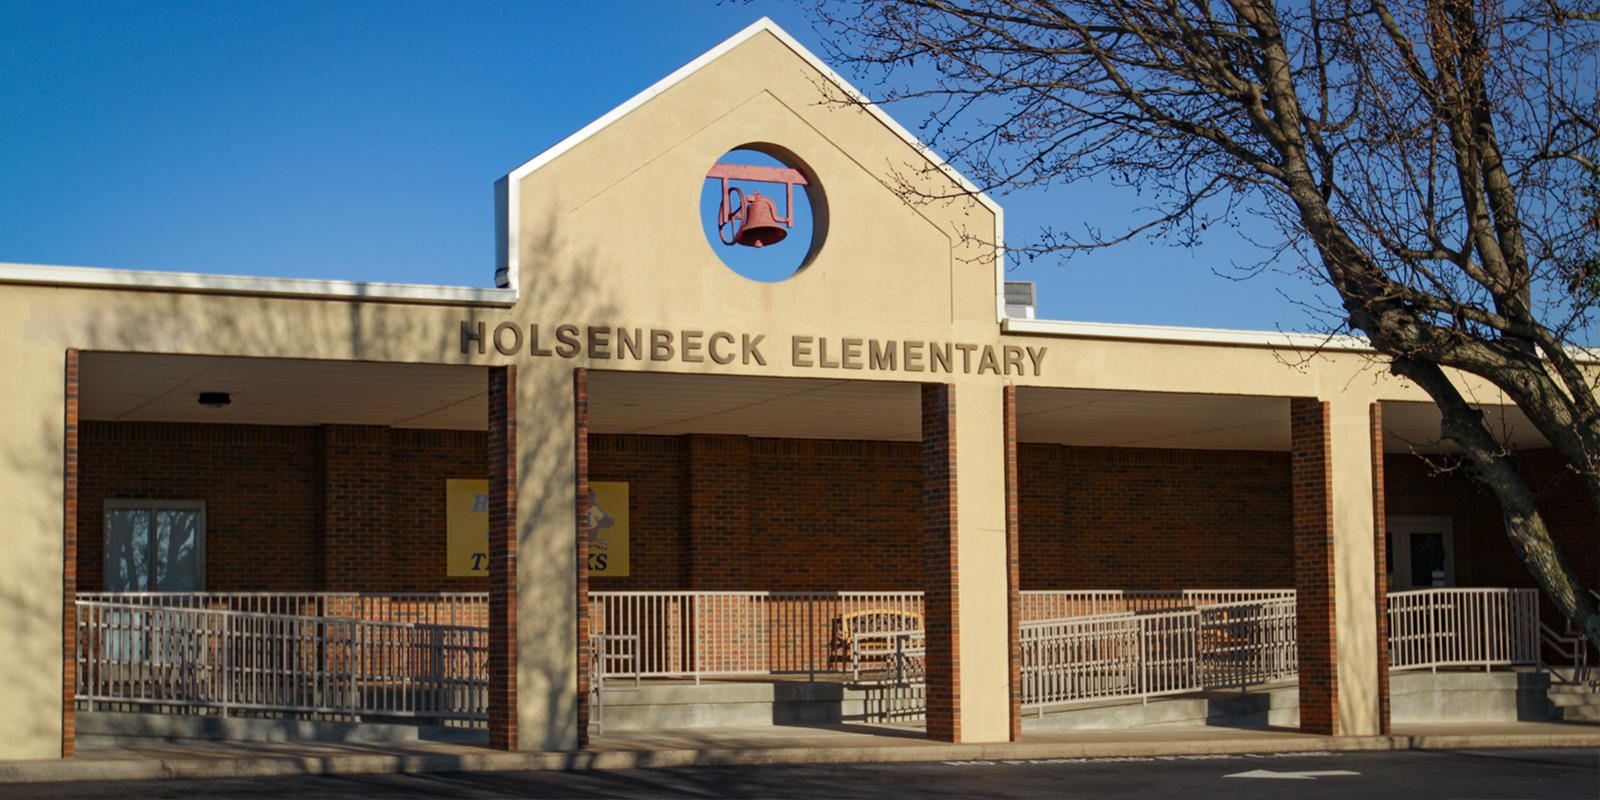 Holsenbeck Elementary School outside